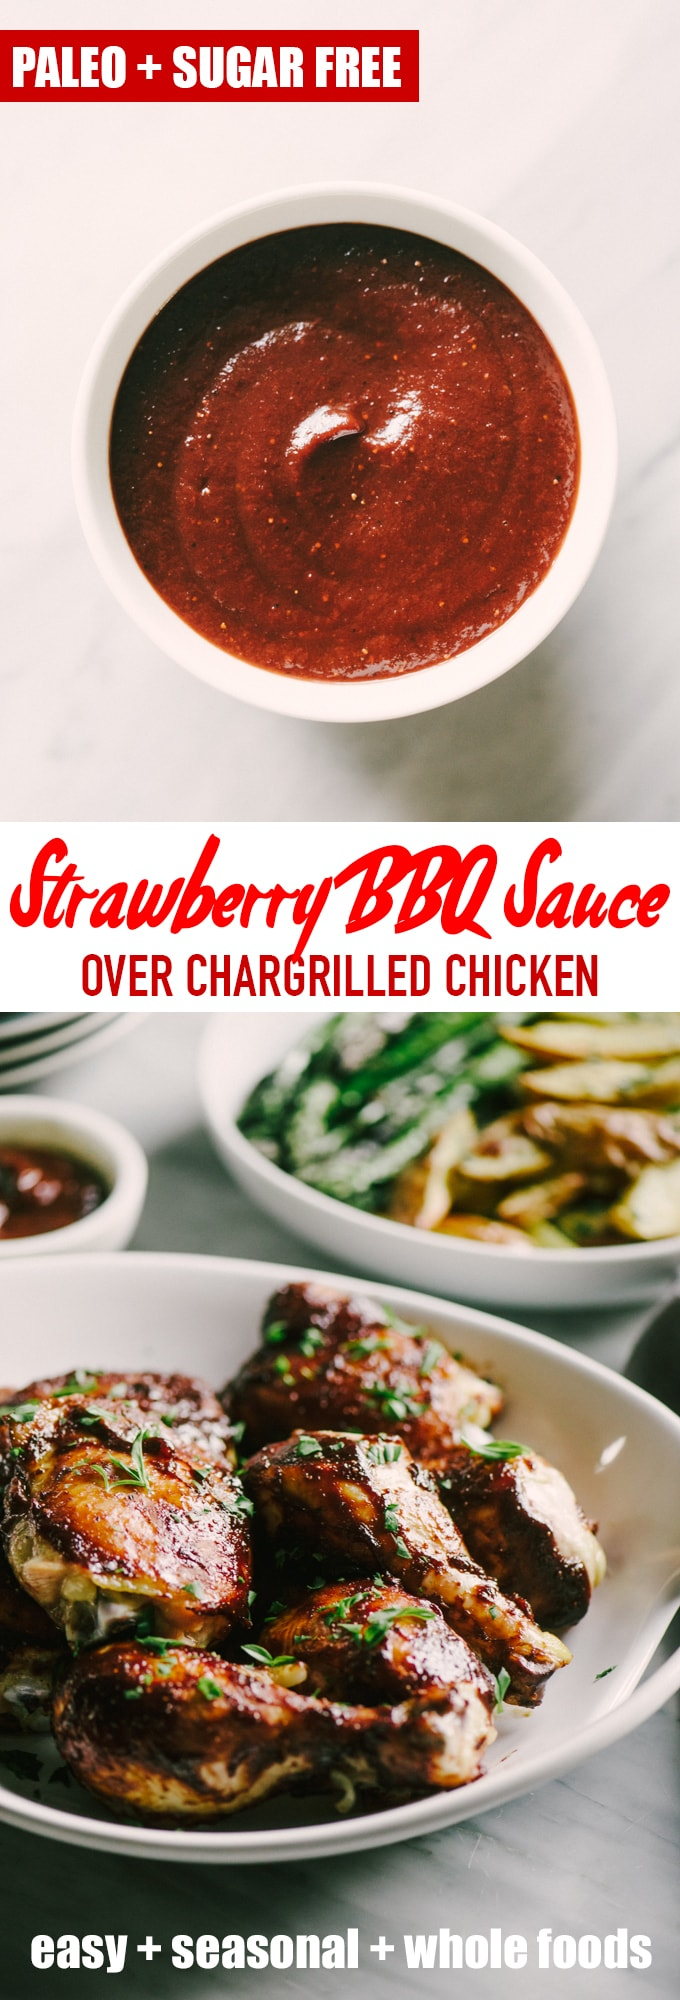 This strawberry BBQ sauce is sweet and tangy, and a perfect companion to juicy grilled chicken. For my vegetarian friends, try it as a base for pizza with thinly sliced new potatoes, blue cheese, and arugula. #paleo #sugarfree #strawberry #bbq #wholefoods #realfood